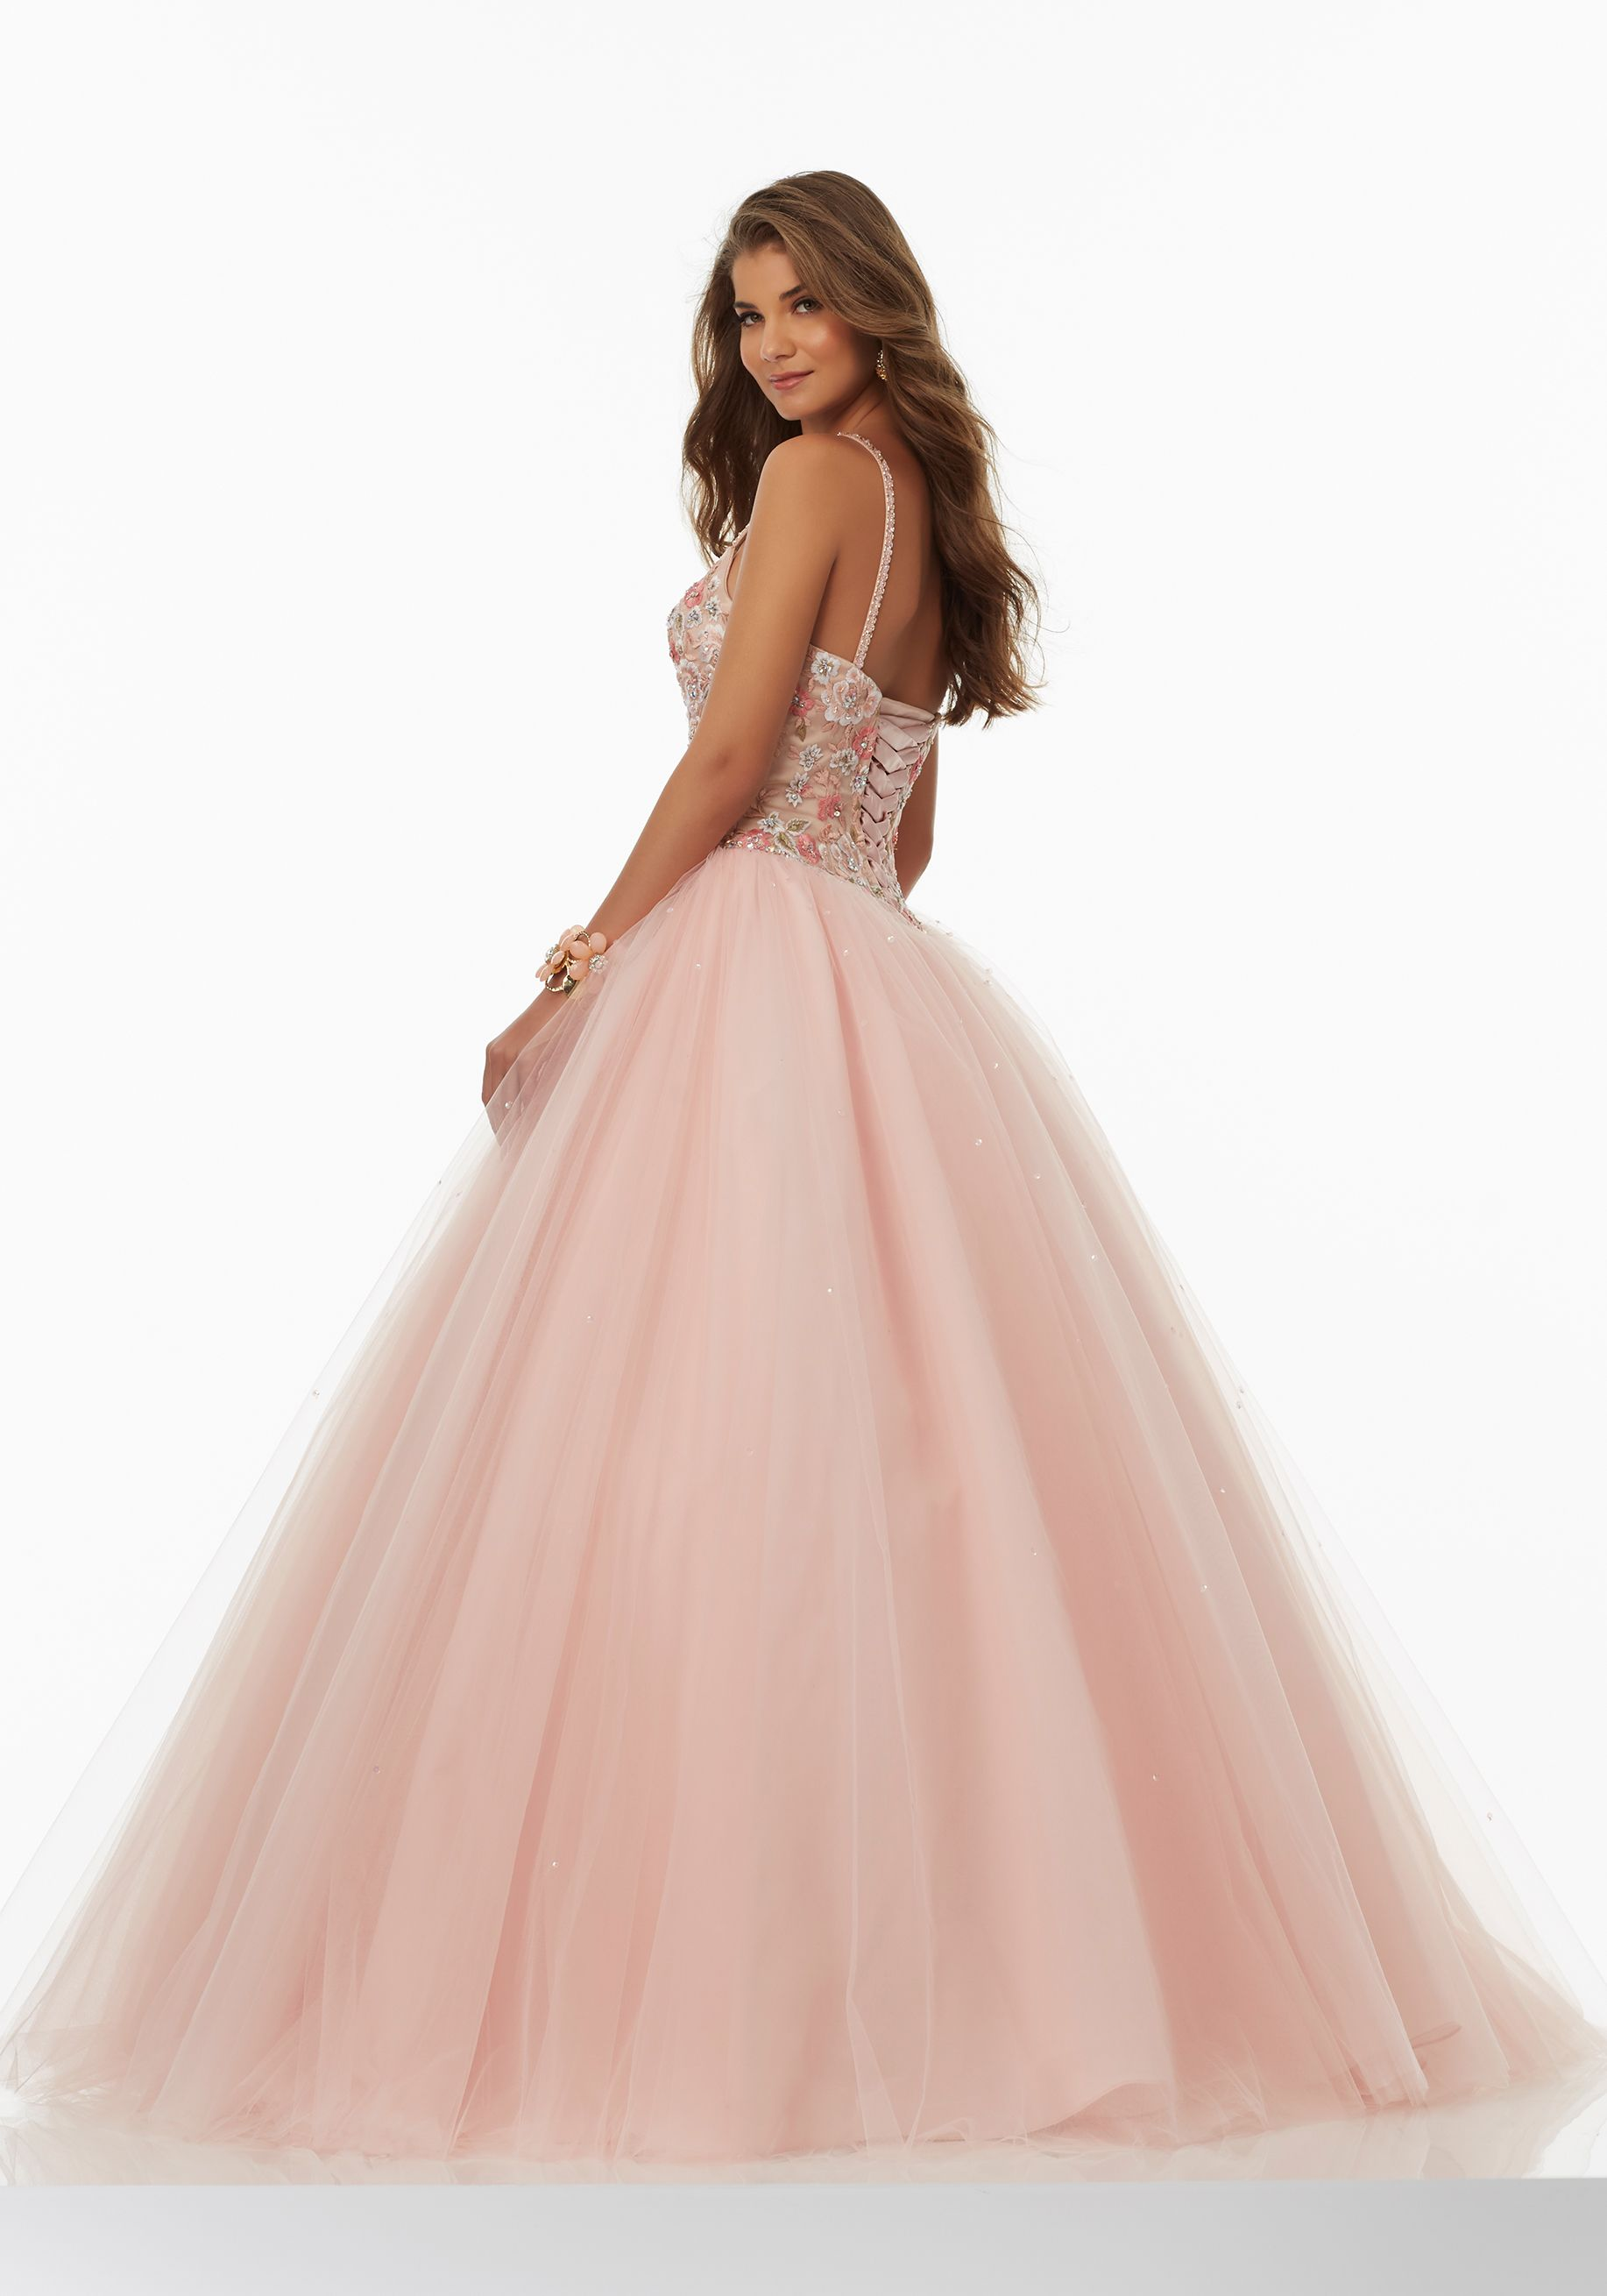 Embroidered Tulle Prom Ballgown with Deep-V Neckline and Basque ...